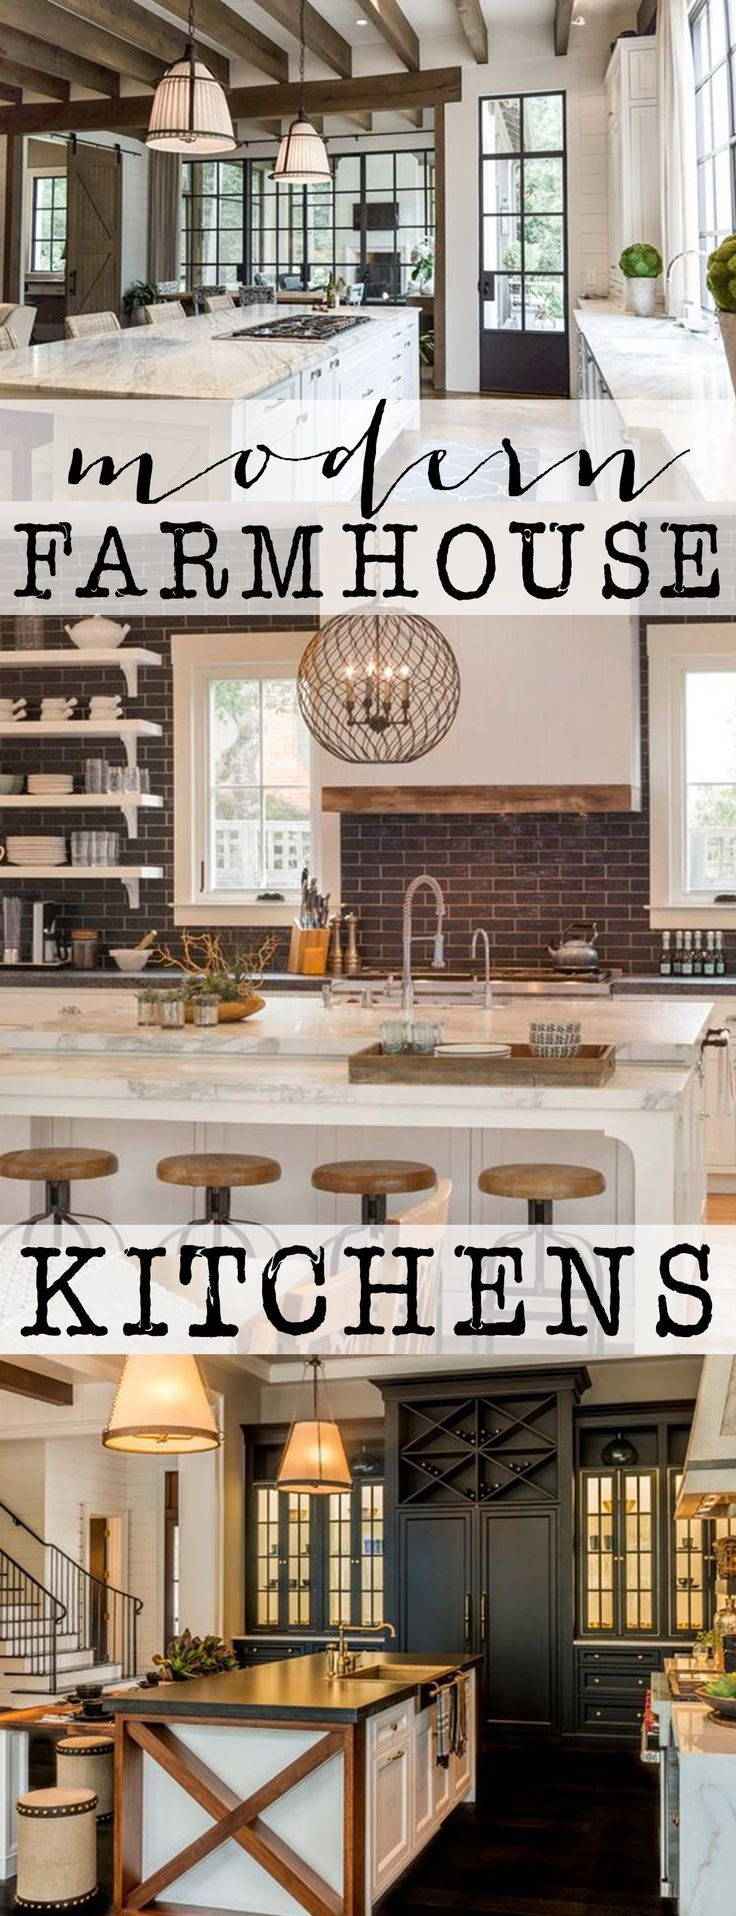 25 Best Ideas About Kitchen Designs On Pinterest Kitchen Pantry Utensil Storage And Traditional Cooking Utensils